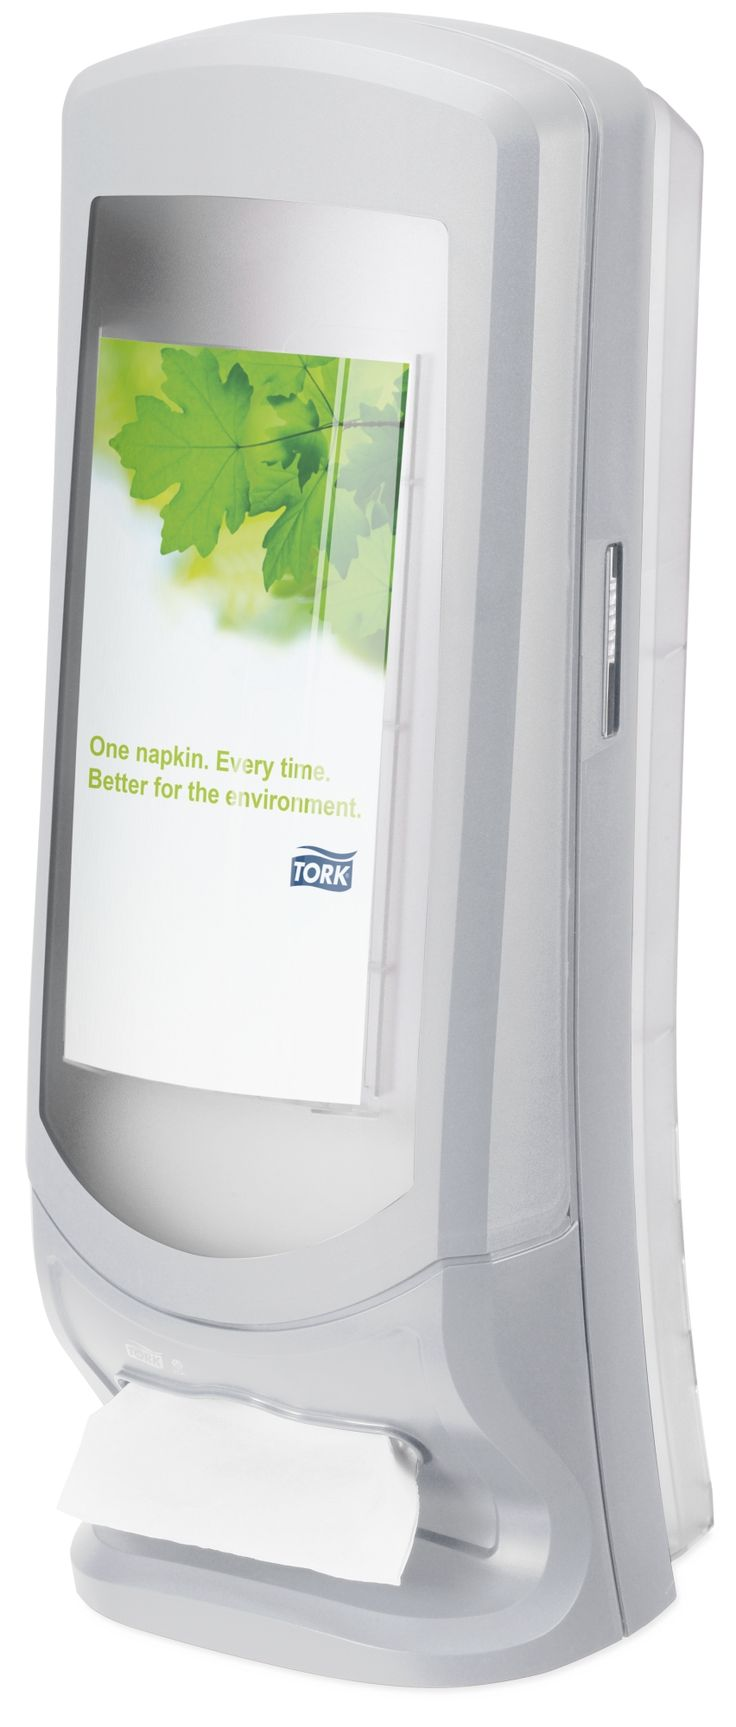 Tork Xpressnap® Stand Napkin Dispenser: We guarantee Tork Xpressnap® napkin dispensing system will reduce napkin usage by at least 25% compared with traditional dispensers, helping you to reduce napkin consumption and waste. (System: N4 - Interfolded napkin system; Material: Plastic; Height: 622mm, Width: 235 mm, Depth: 235 mm; Color: Light grey) Get more information about this product at: http://bimobject.com/en/sca-eu/product/272213/sca-tork-eu